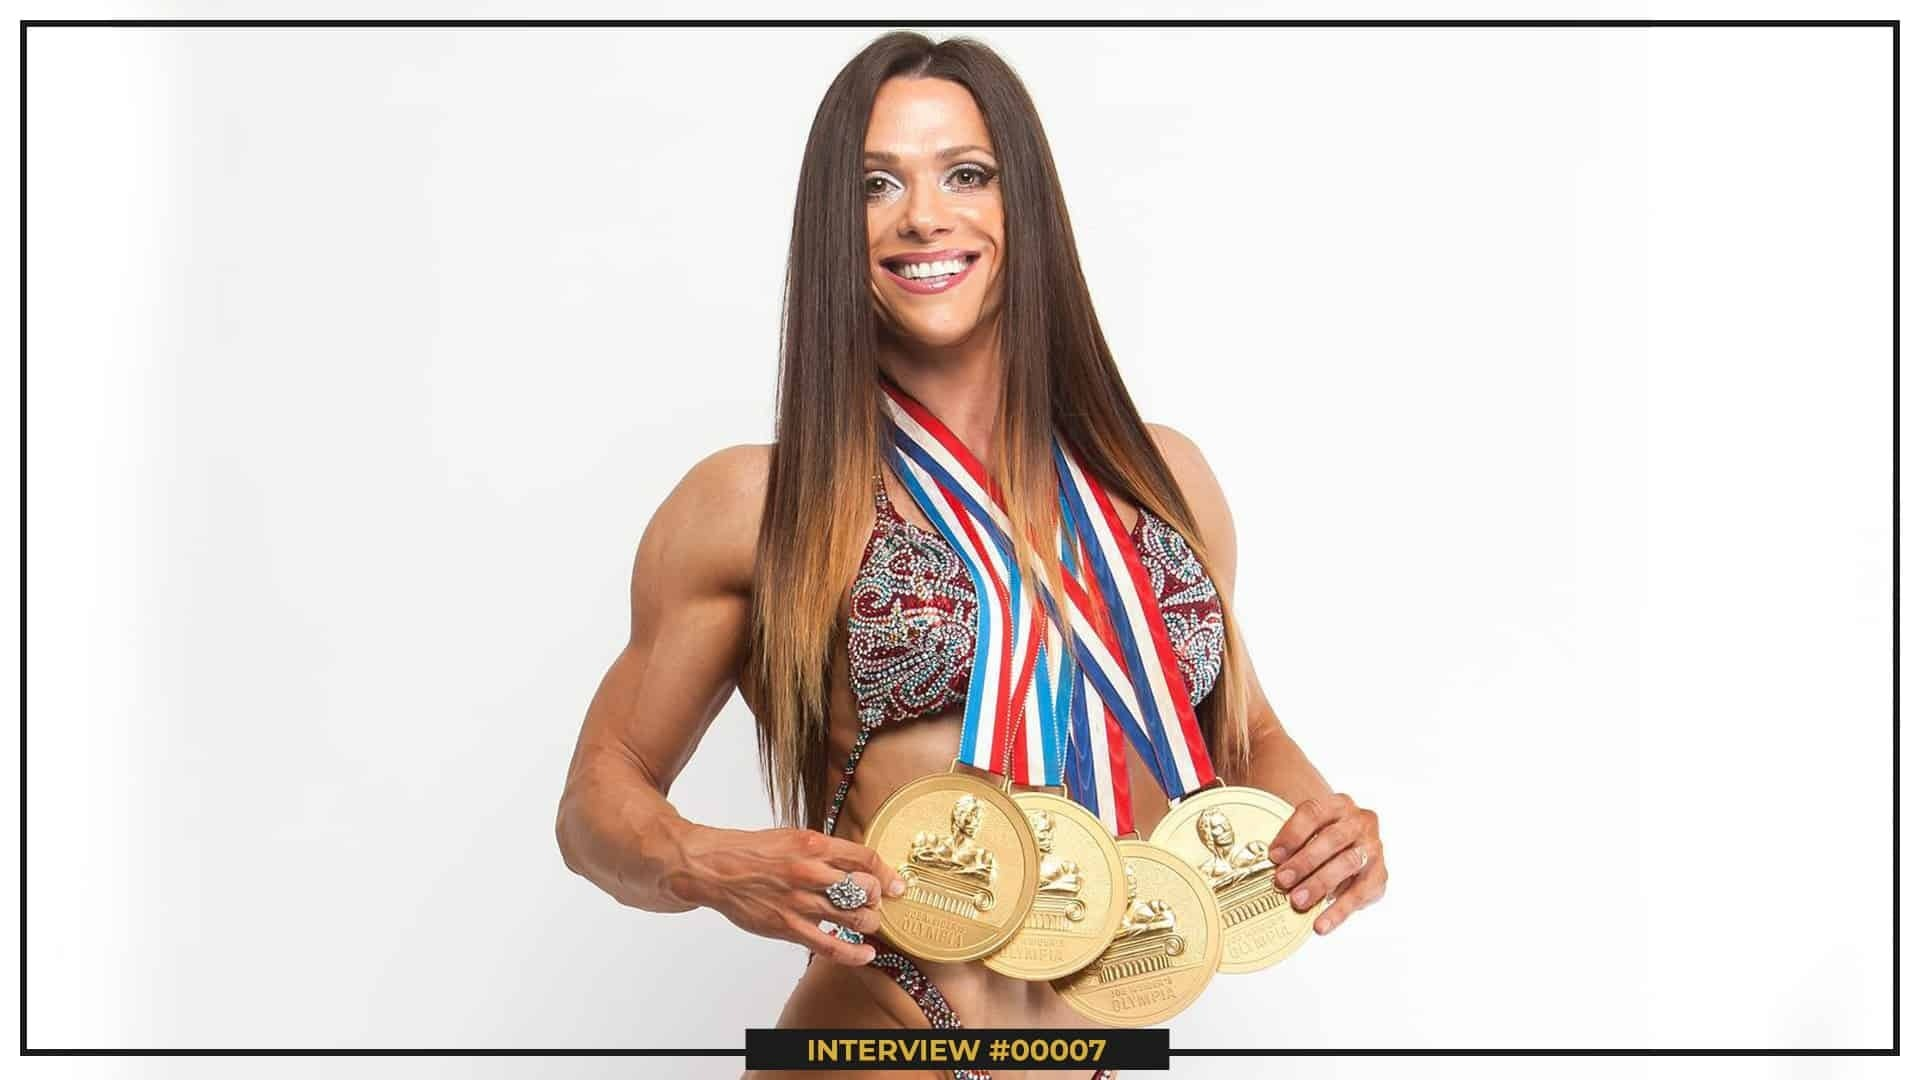 Oksana Grishina standing in front of the camera, smiling and holding her four golden ''Mr. Olympia'' medals, on a white backgound.